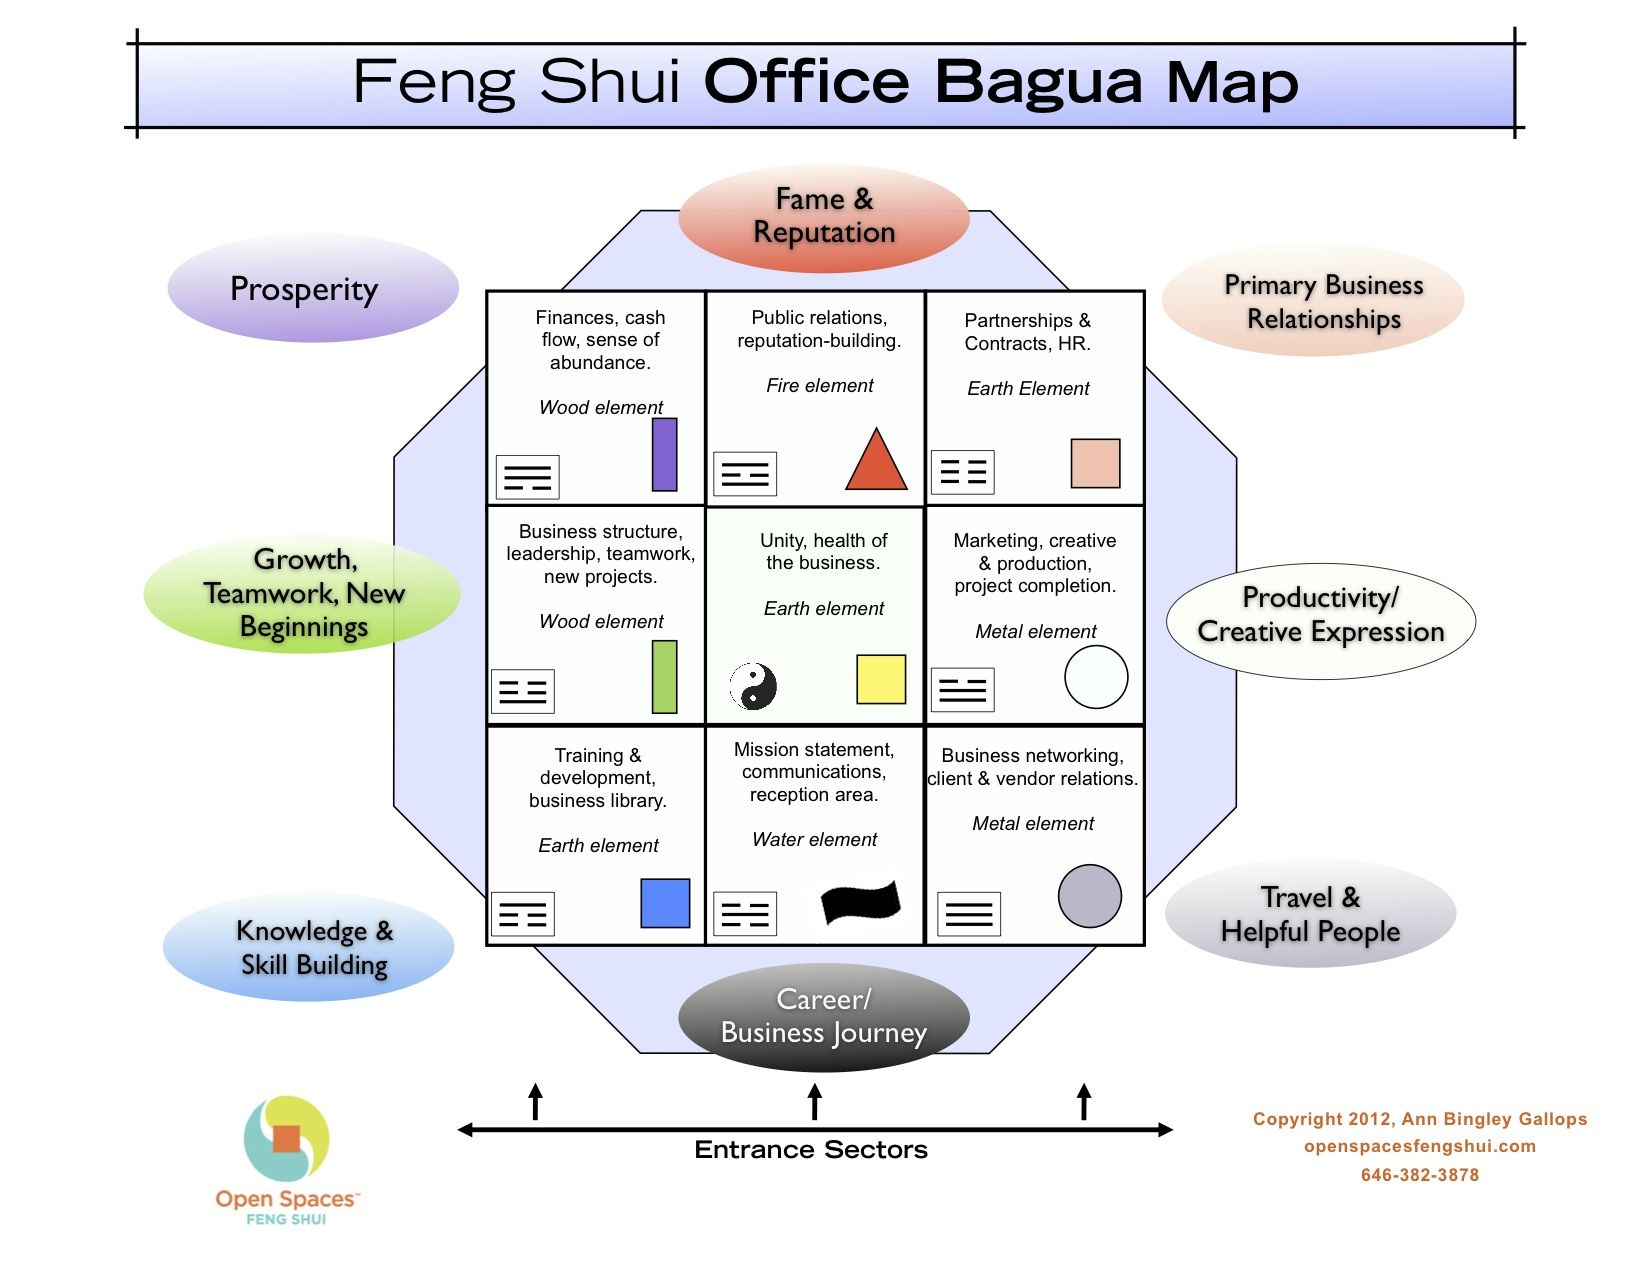 fengshui good office feng shui when you move to a new space office feng shui on feng. Black Bedroom Furniture Sets. Home Design Ideas